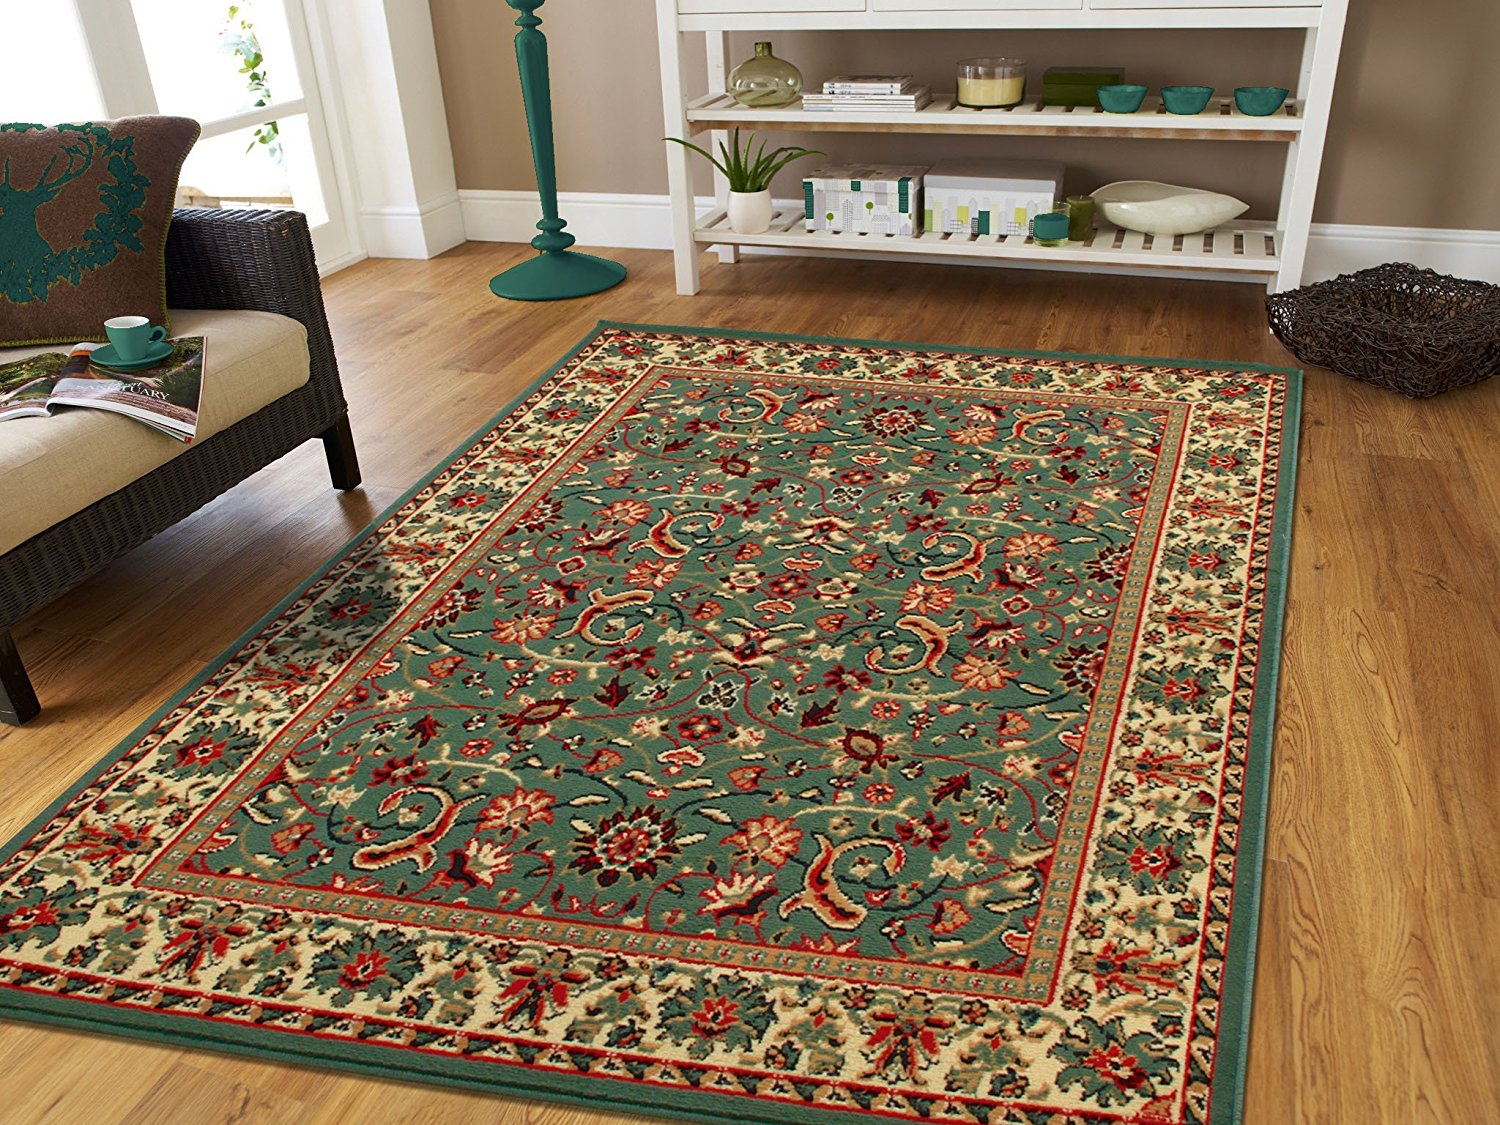 A Guide To The Types Of Area Rugs